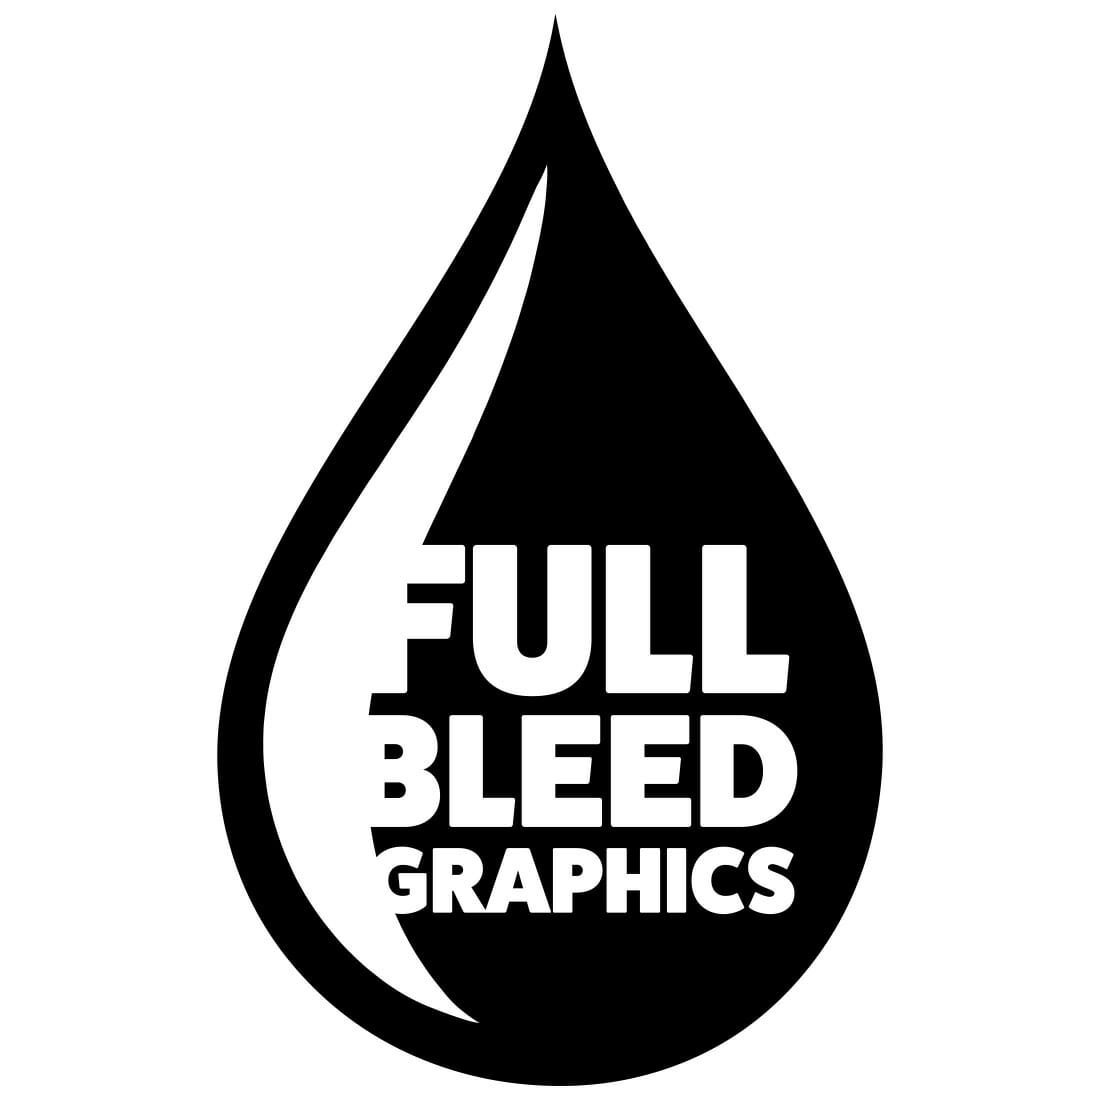 Full Bleed Graphics